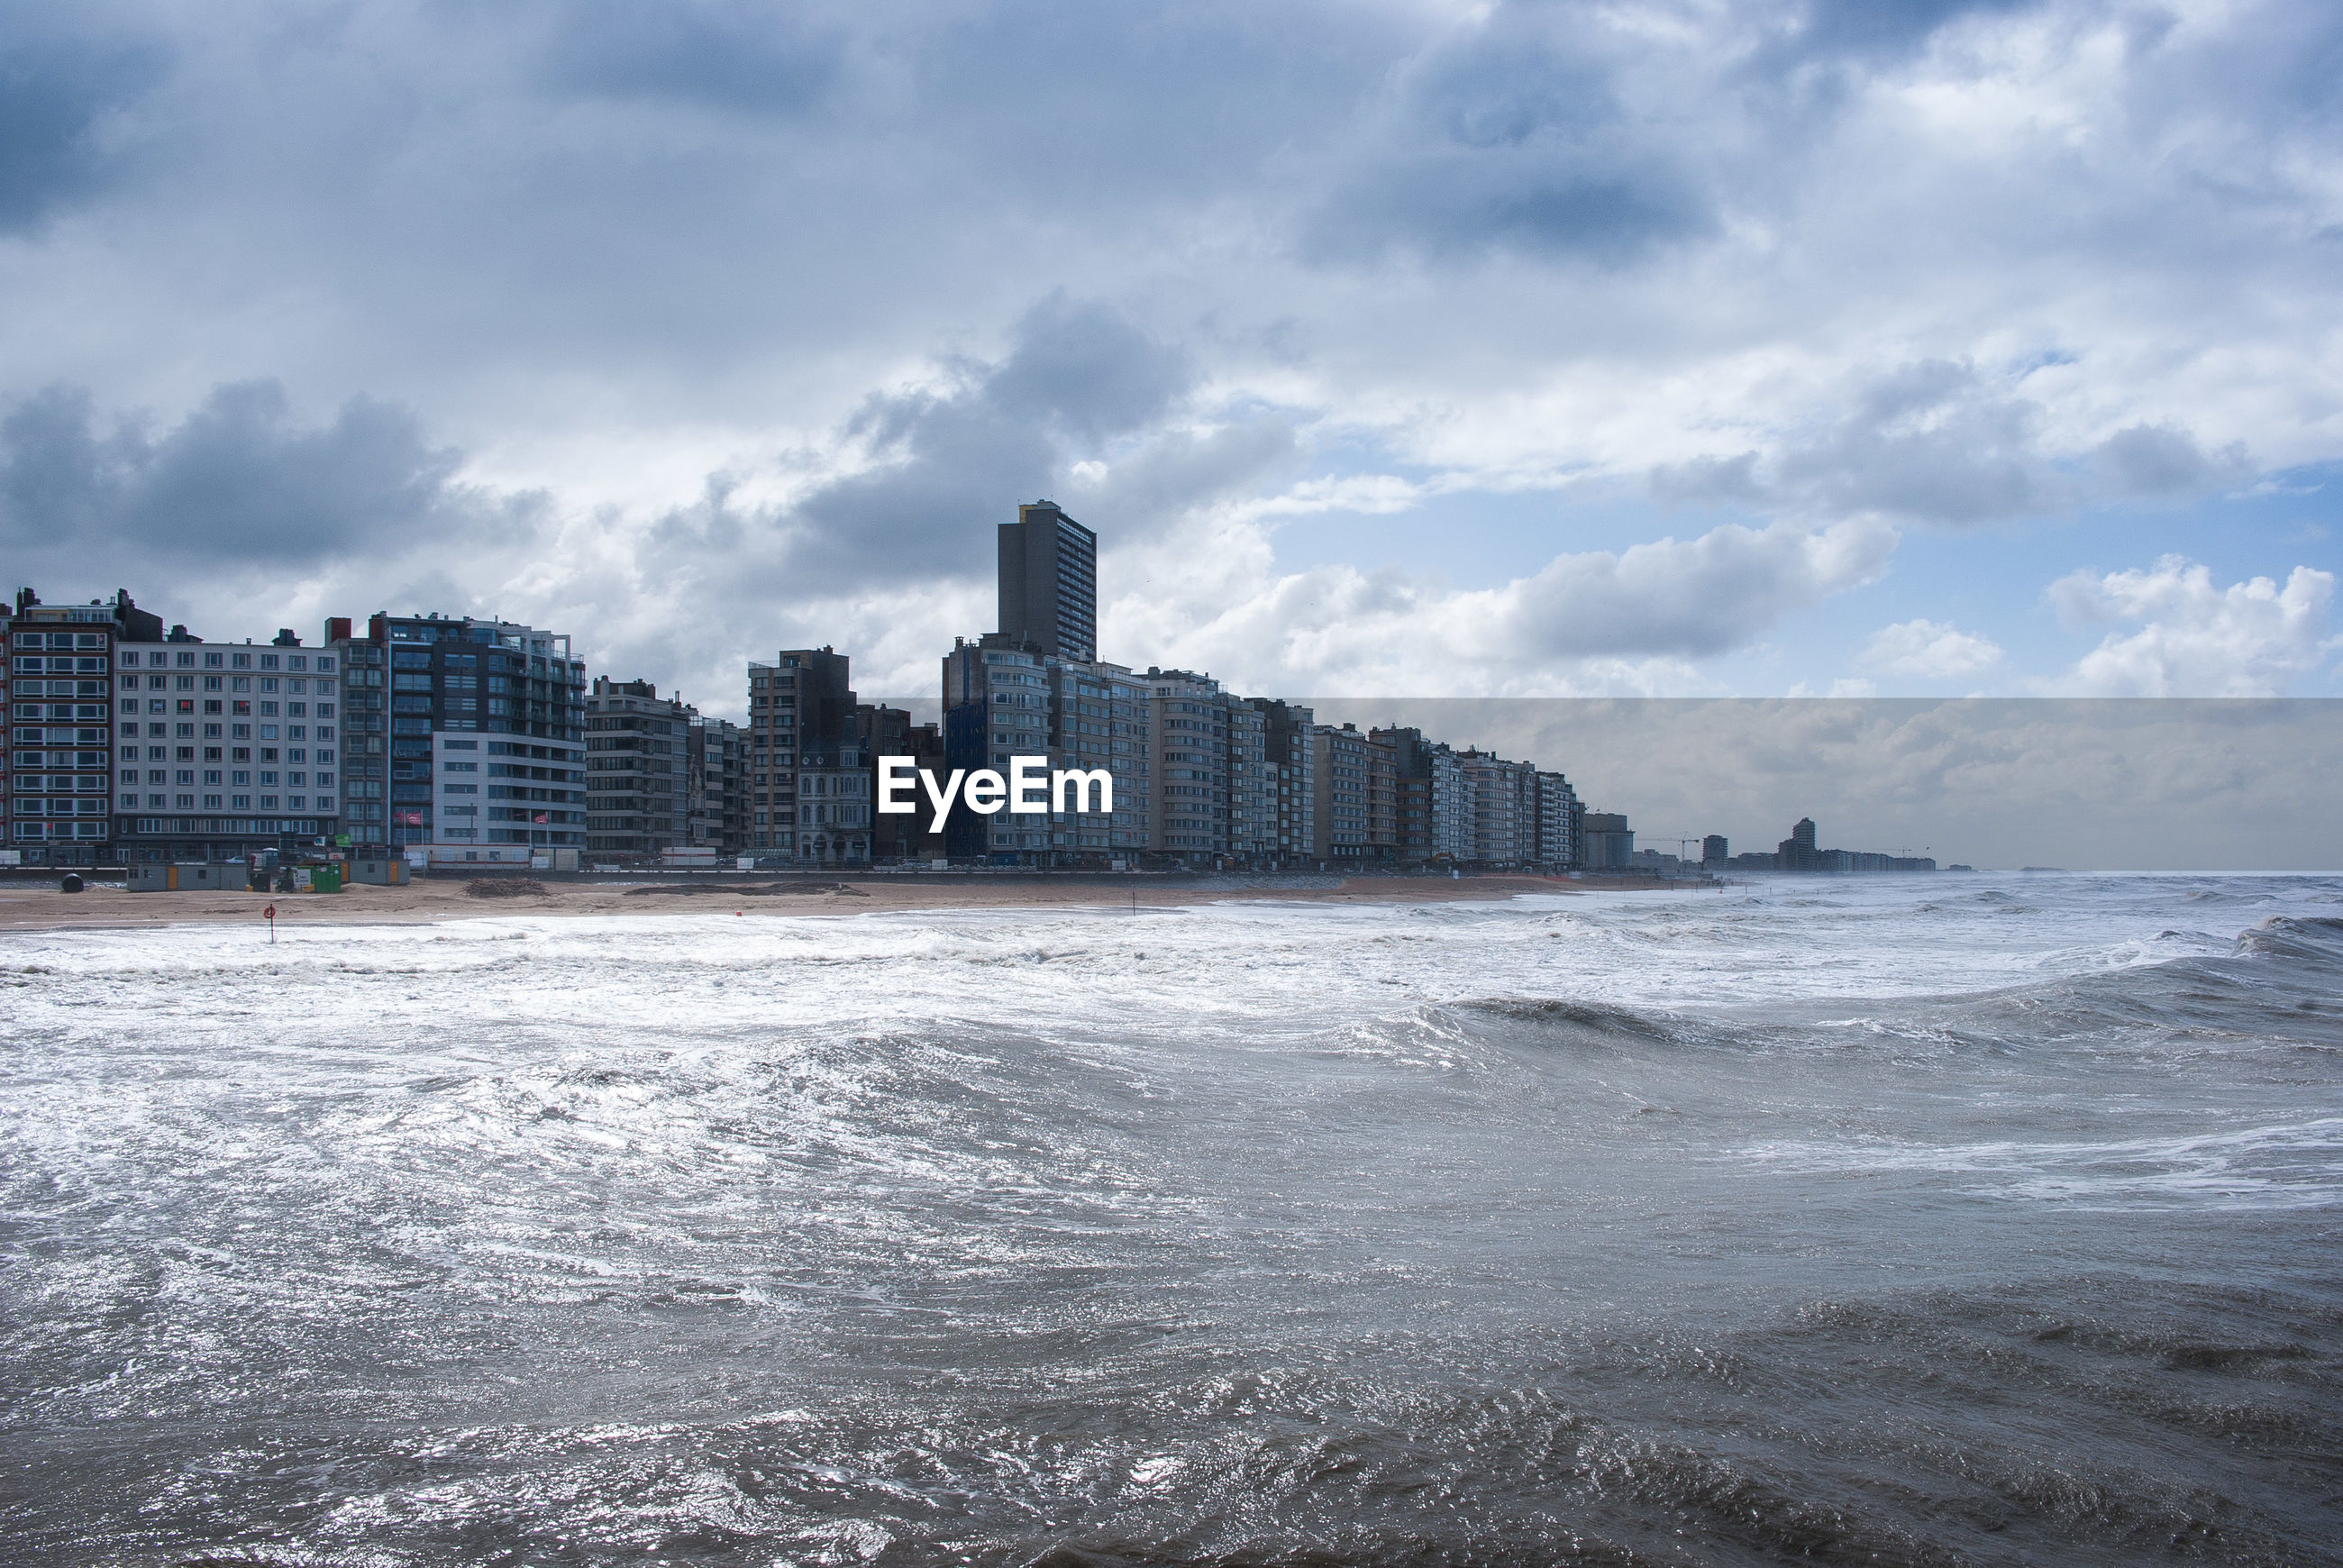 VIEW OF SEA WITH BUILDINGS IN BACKGROUND